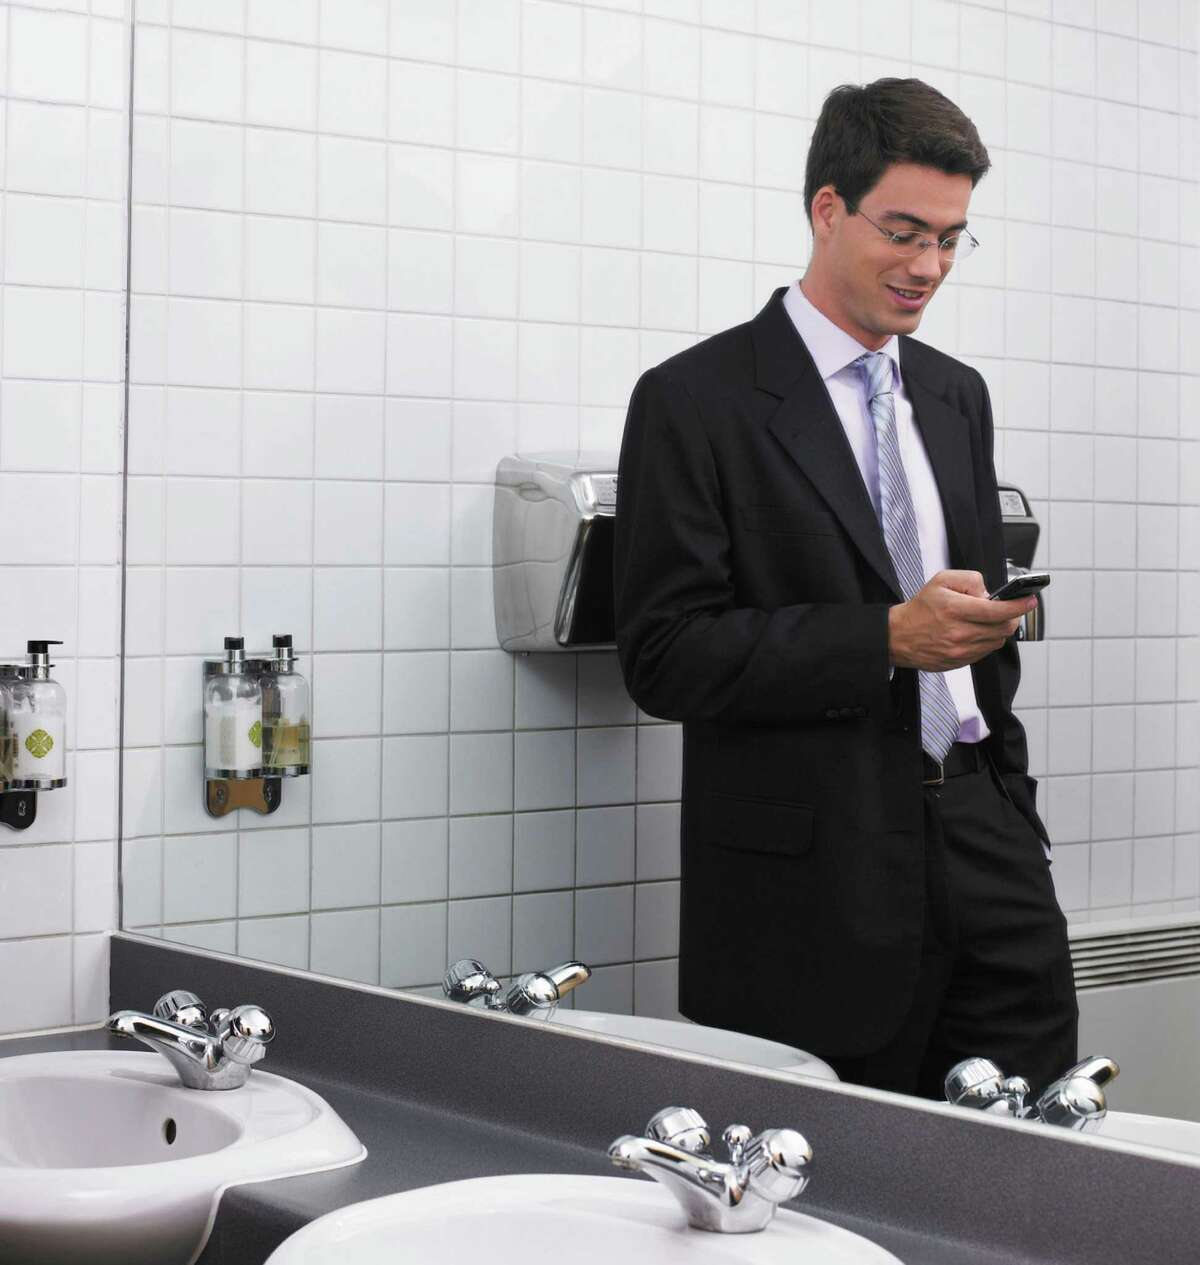 53 percent use their smartphones in the bathroom.